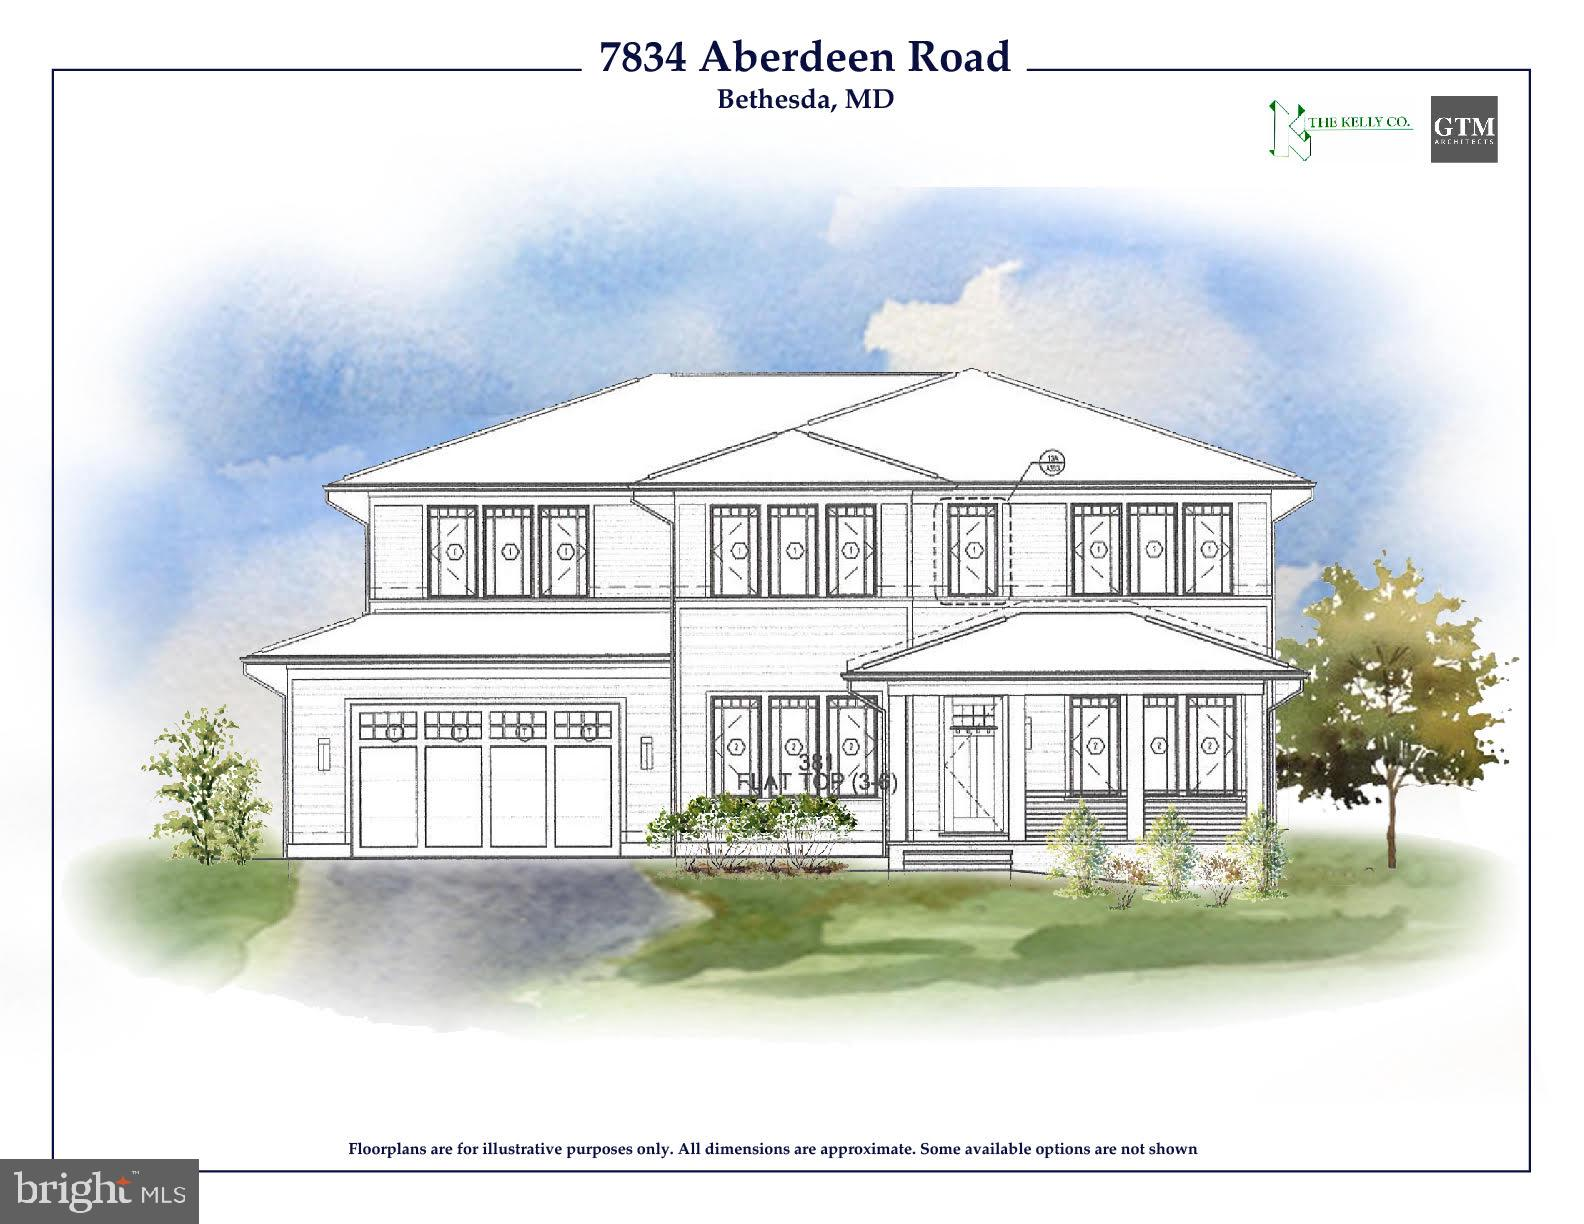 7834 ABERDEEN ROAD, BETHESDA, MD 20814